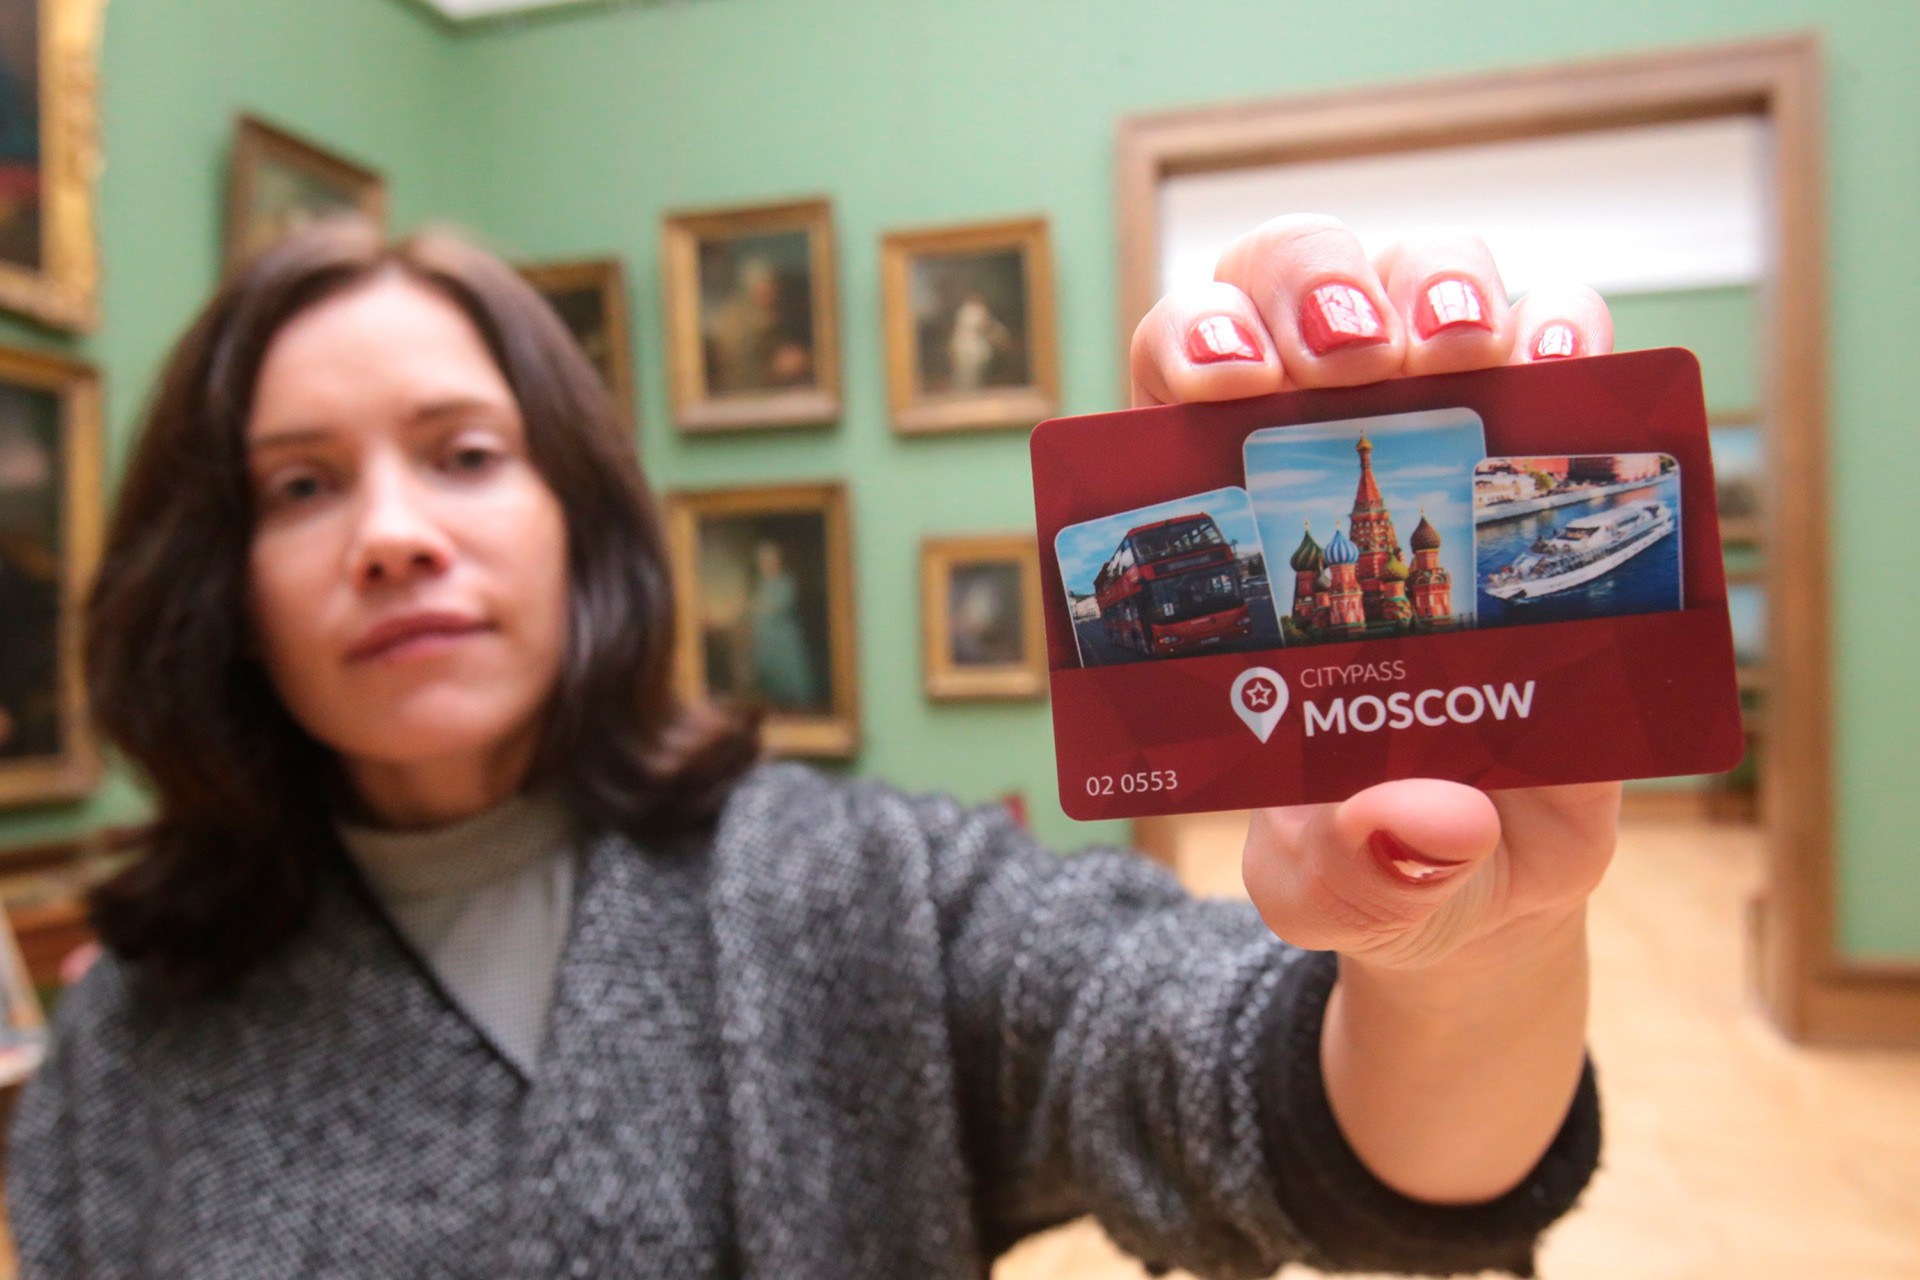 Russian tourist pass CityPass